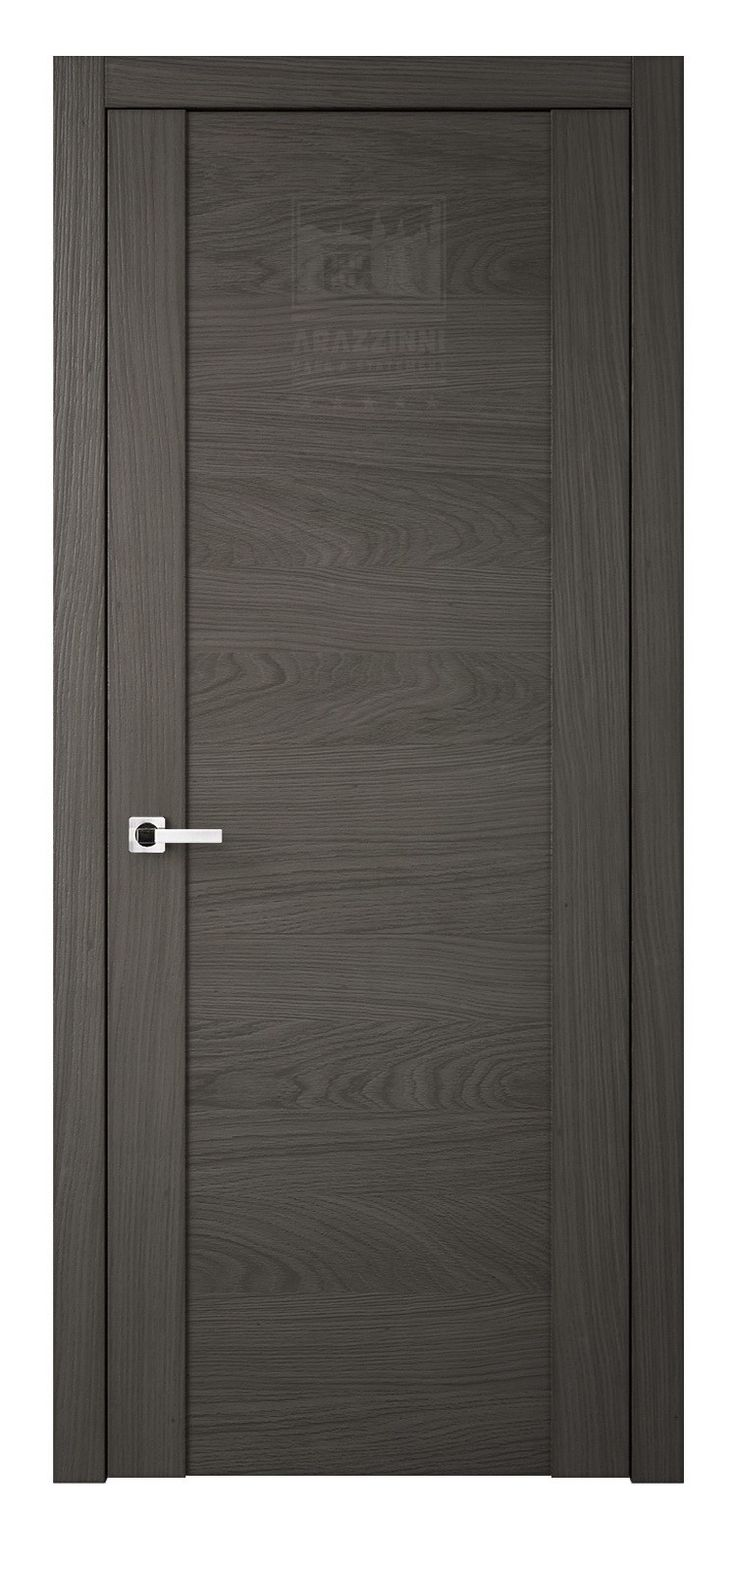 Arazzinni Quadro Q6011 Interior Door Ash Oak